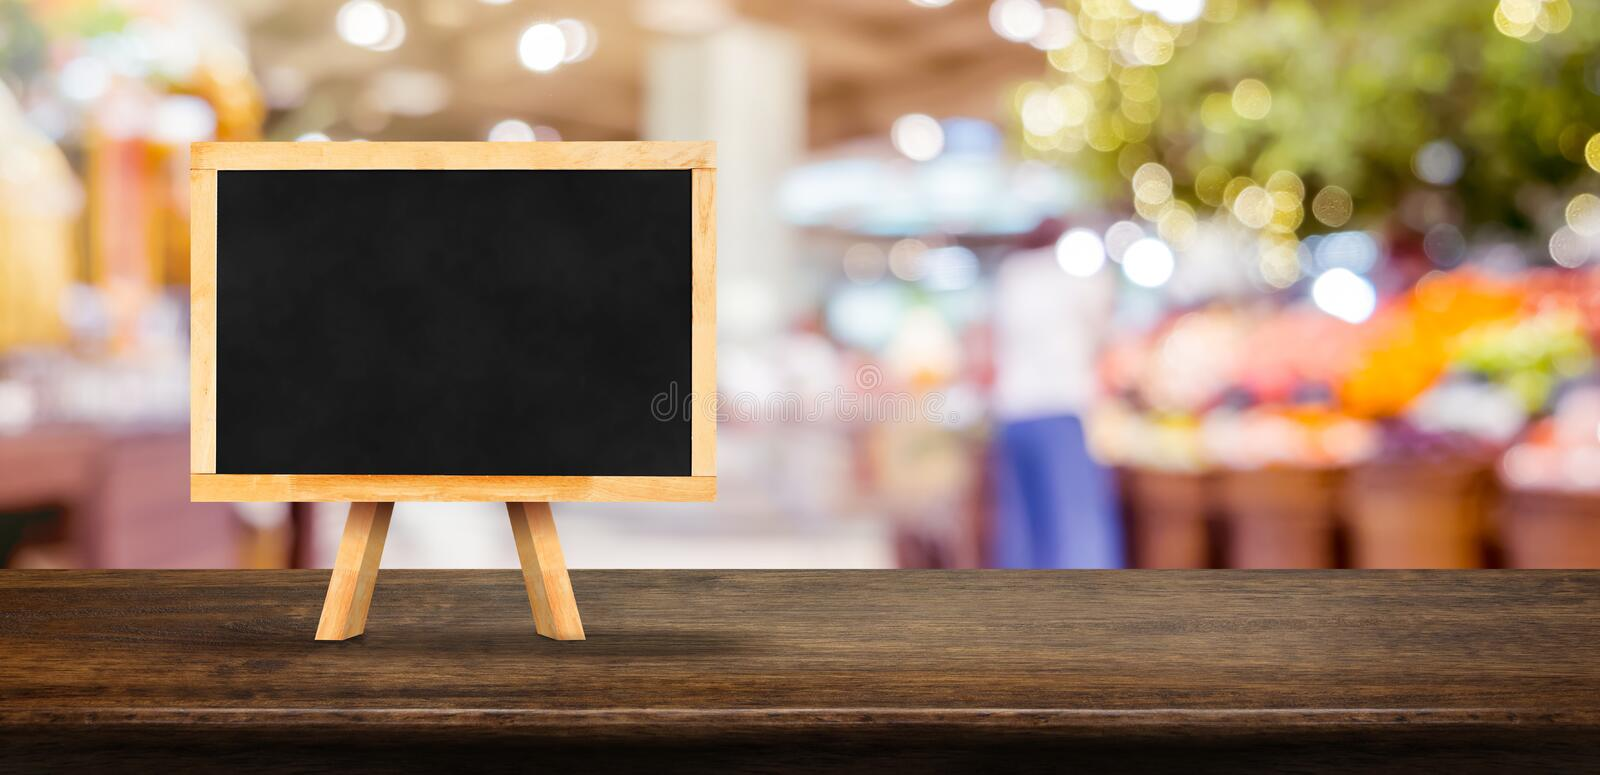 Blank blackborad on wooden table top with blur people shopping at supermarket bokeh background,Mock up for display or montage of royalty free stock images